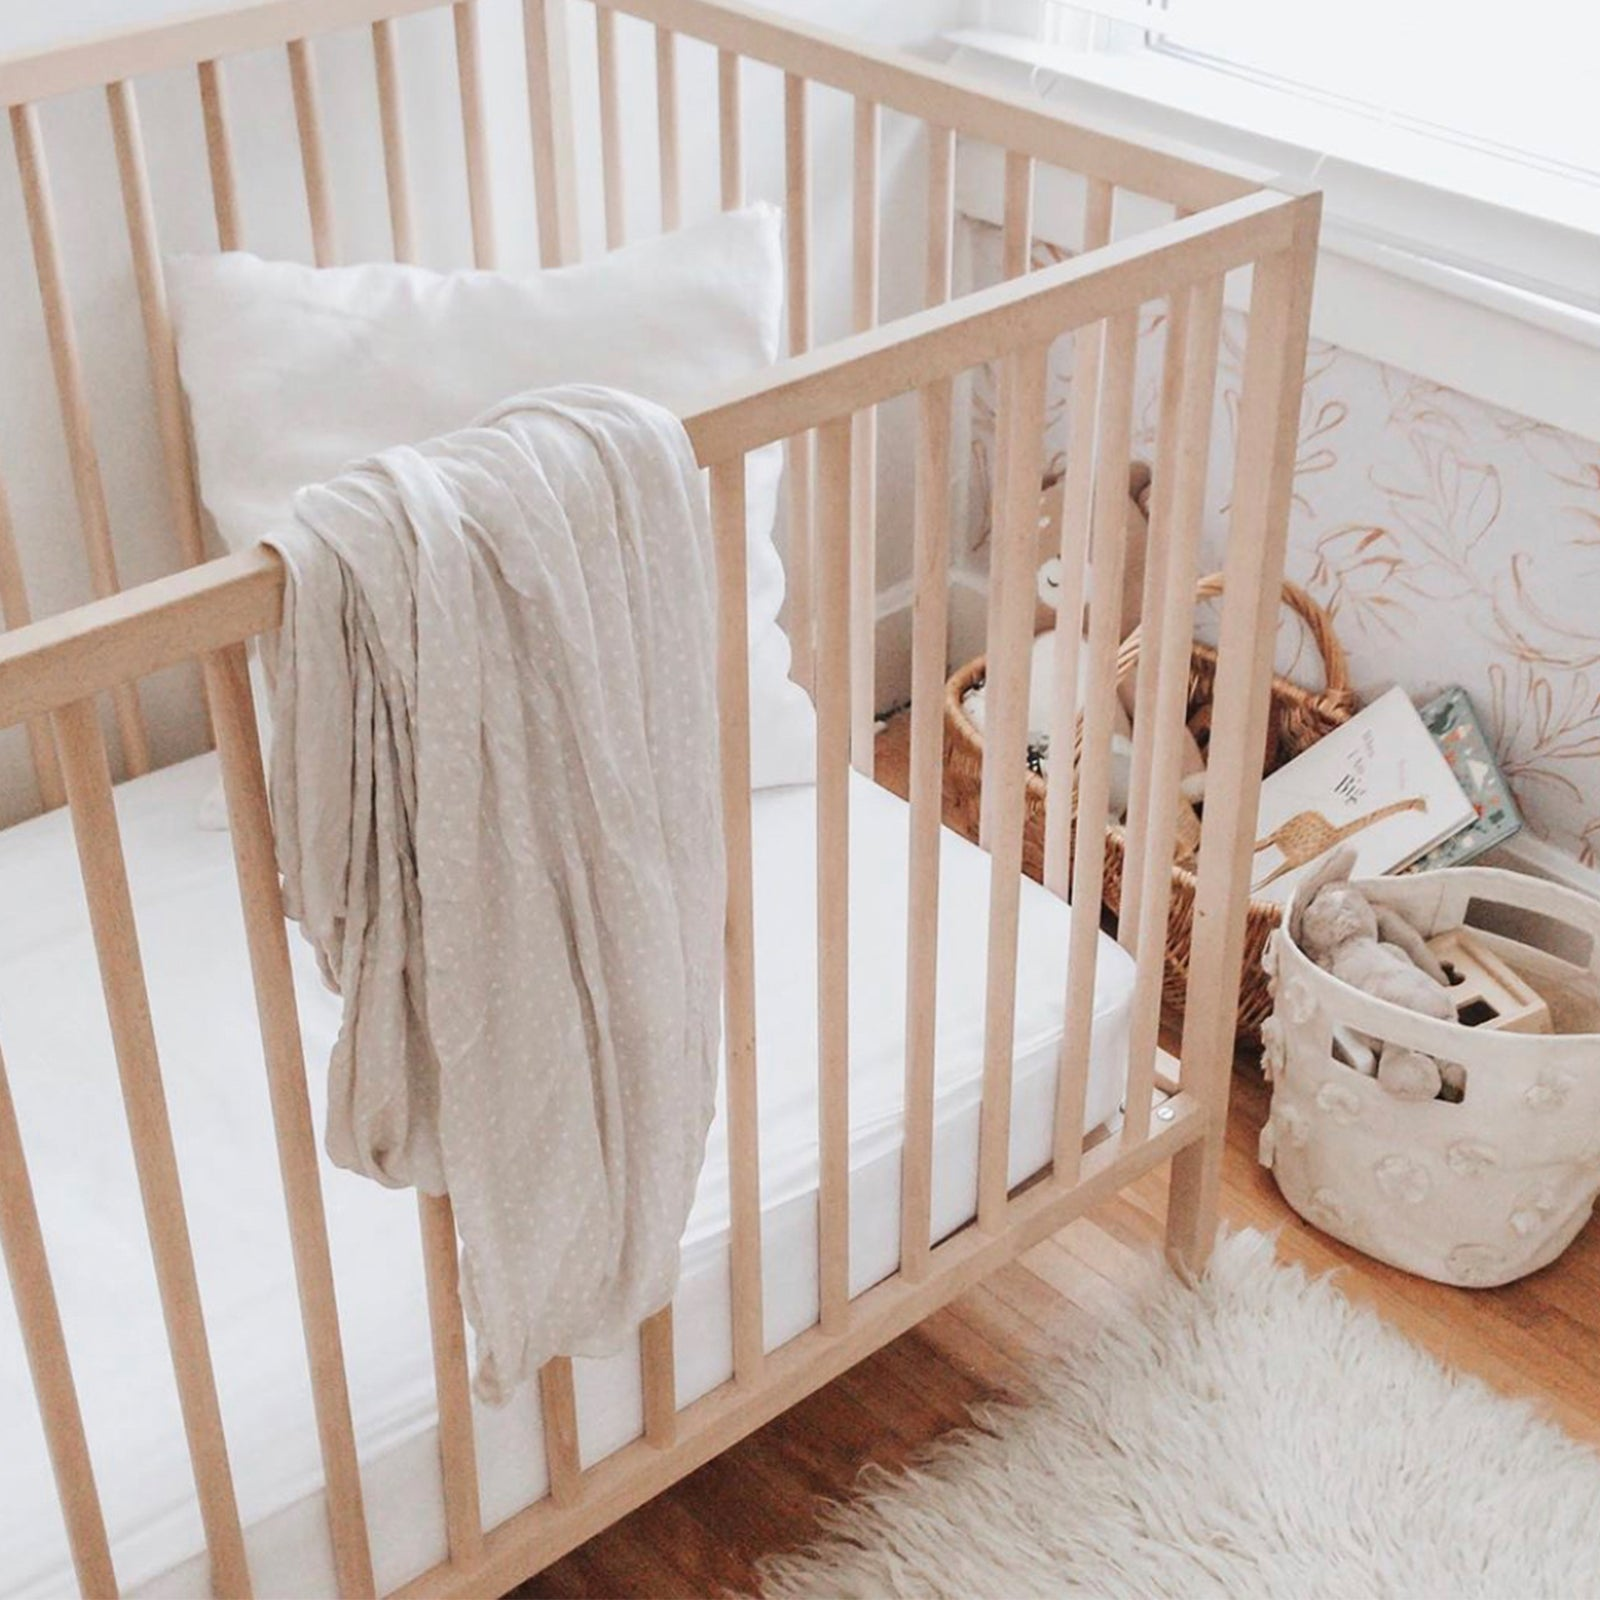 bamboo crib sheets draped over wooden crib